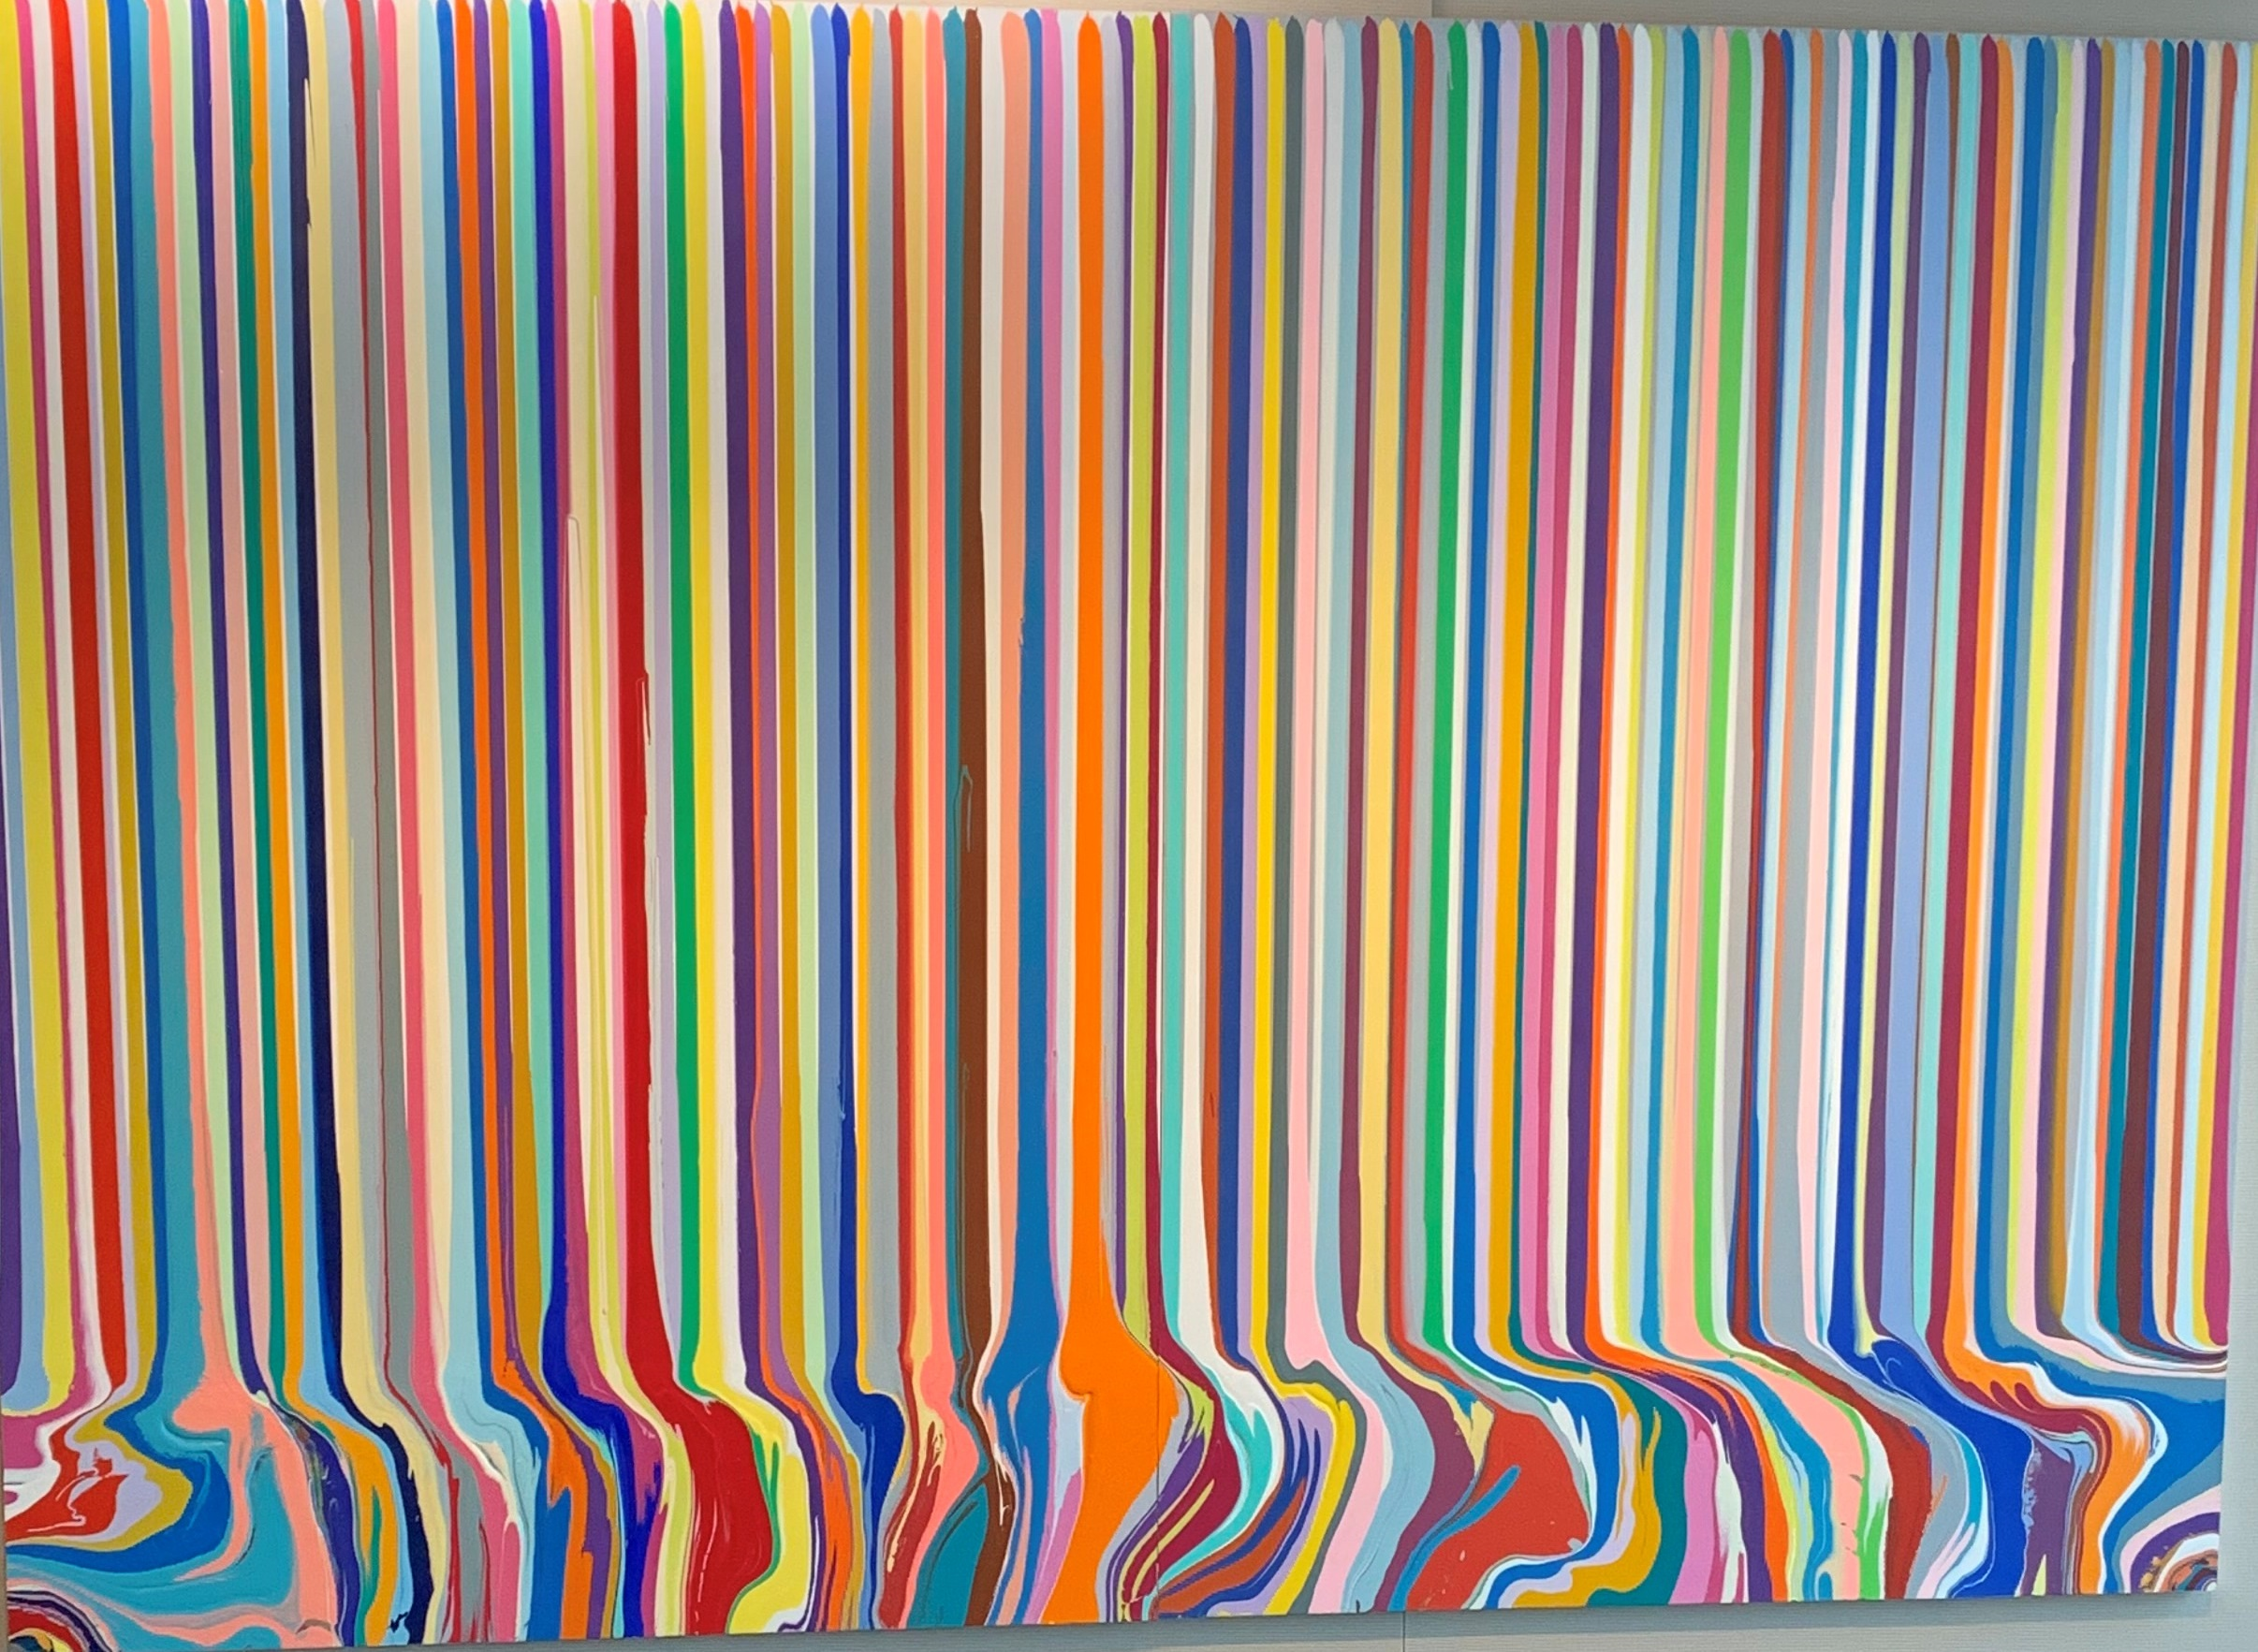 Puddle Painting Bini artwork by Ian Davenport - art listed for sale on Artplode